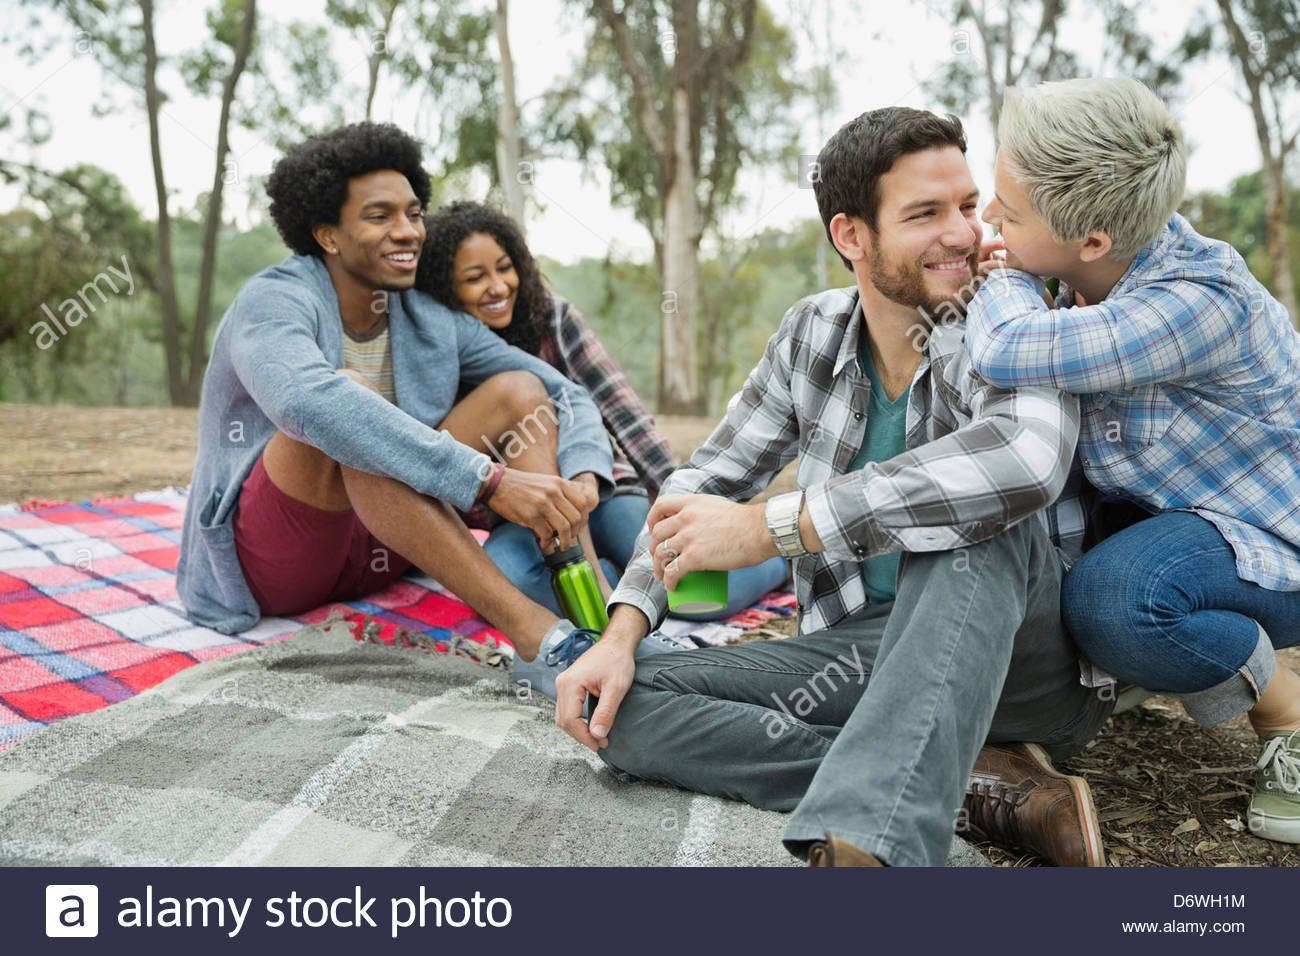 Happy couples spending leisure time together on blanket - Stock Image